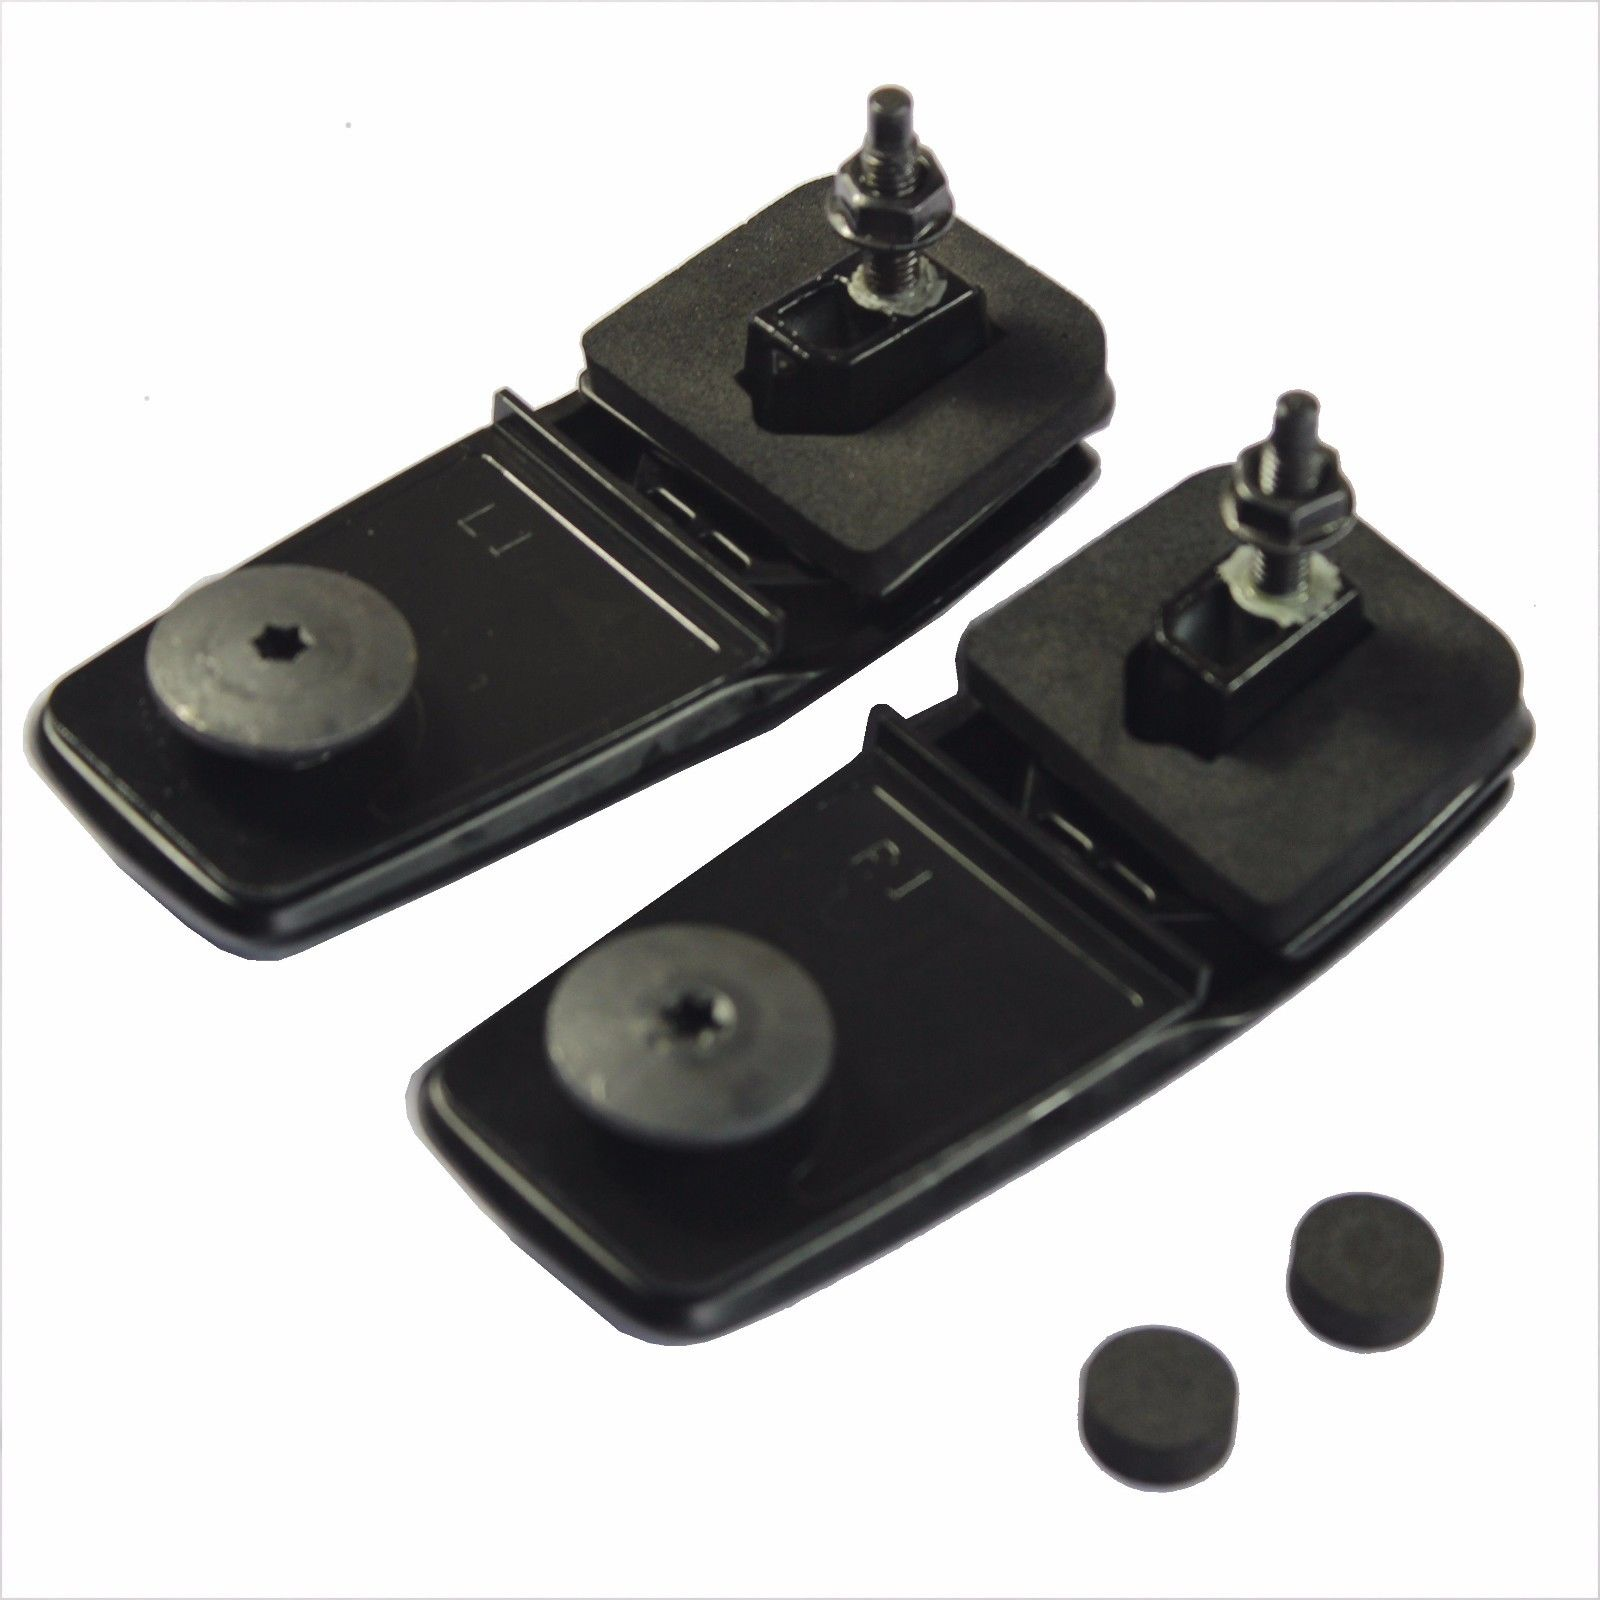 Rear Window Lifting Door Glass Hinge Kit Suitable For: 2008-2012 Ford Escape Mercury Mariner Mazda Tribute 8L8Z78420A68D 8L8Z7